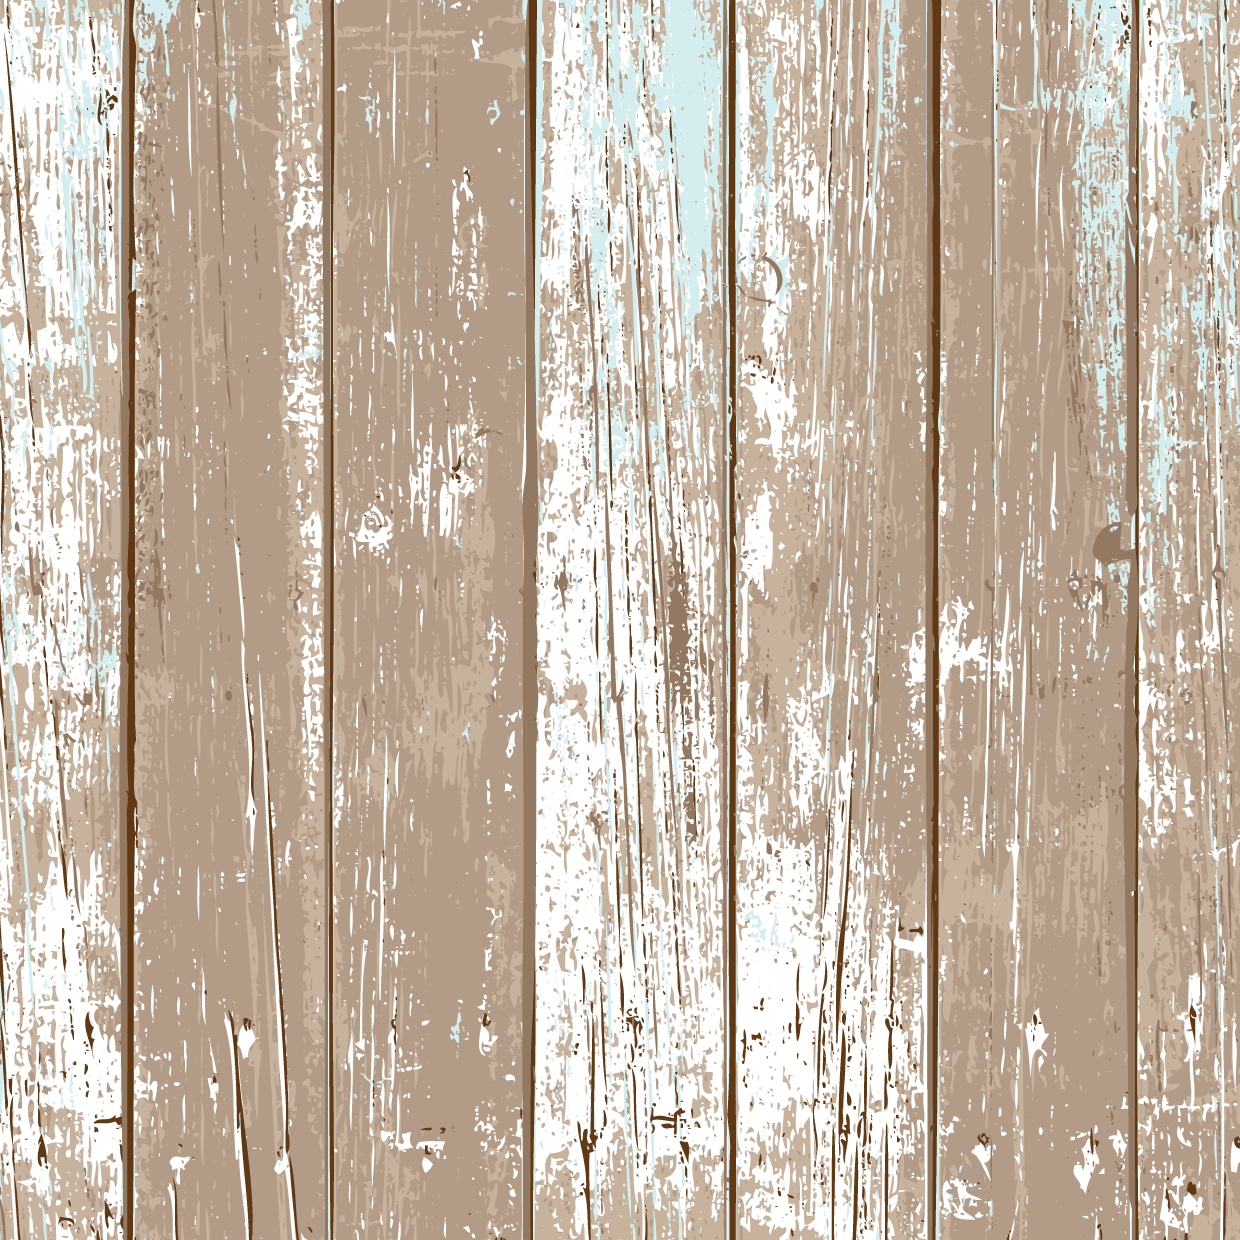 New Printable Vintage Wood Background Http Ift Tt Xm8wfj One Of The Things I Ve Searched Everywhere Background Vintage Wood Background Wood Background Free